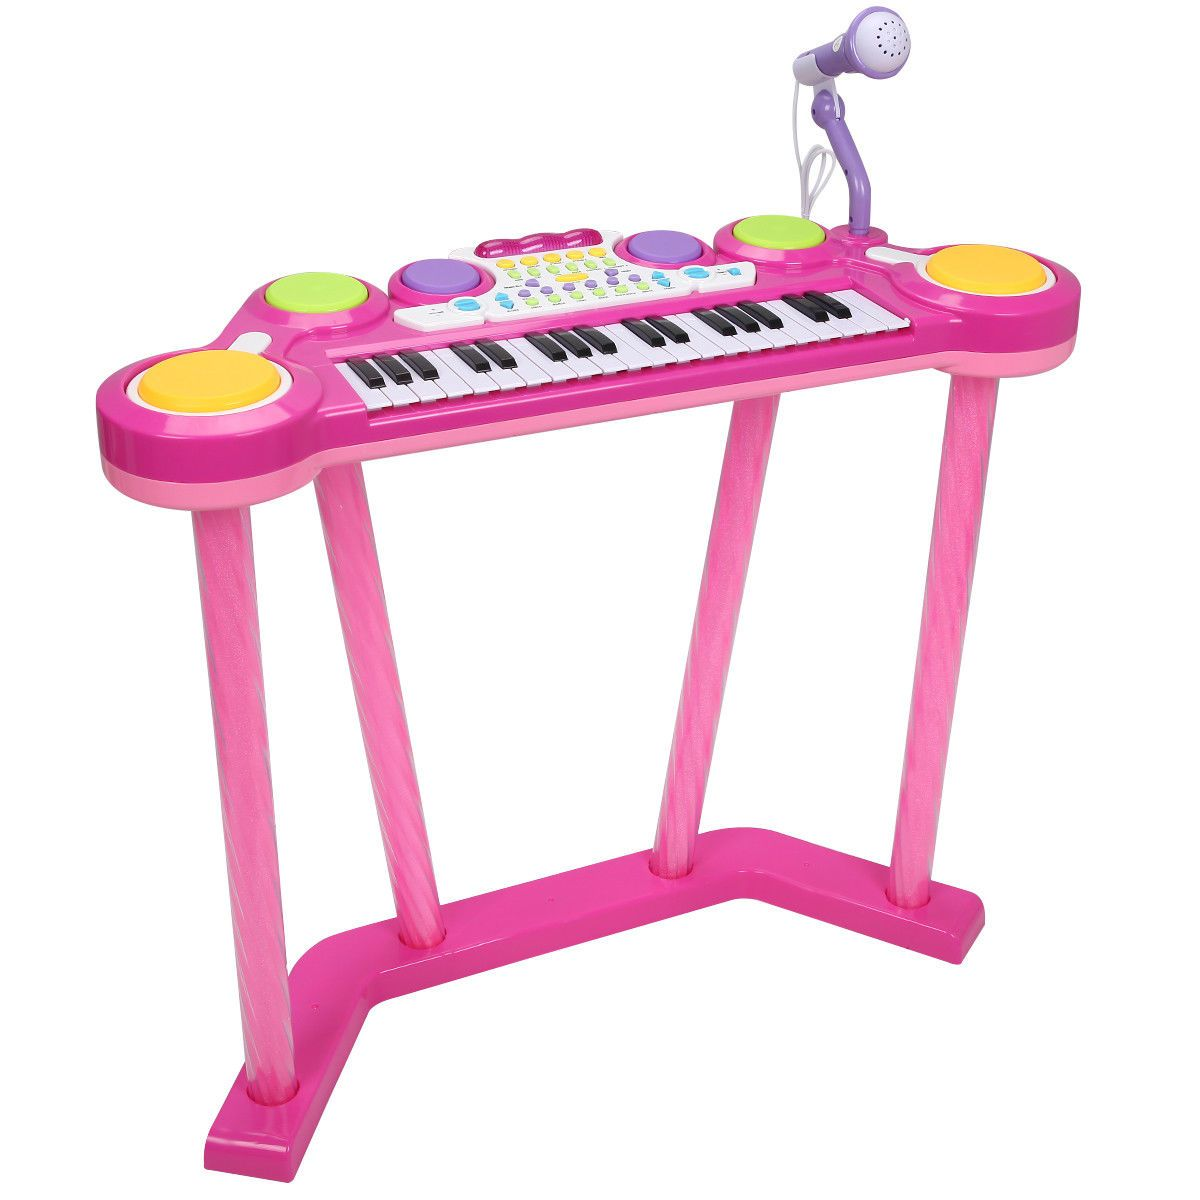 Kids Piano Toy Electronic Keyboard Music Instruments with Microphone 37 Keys